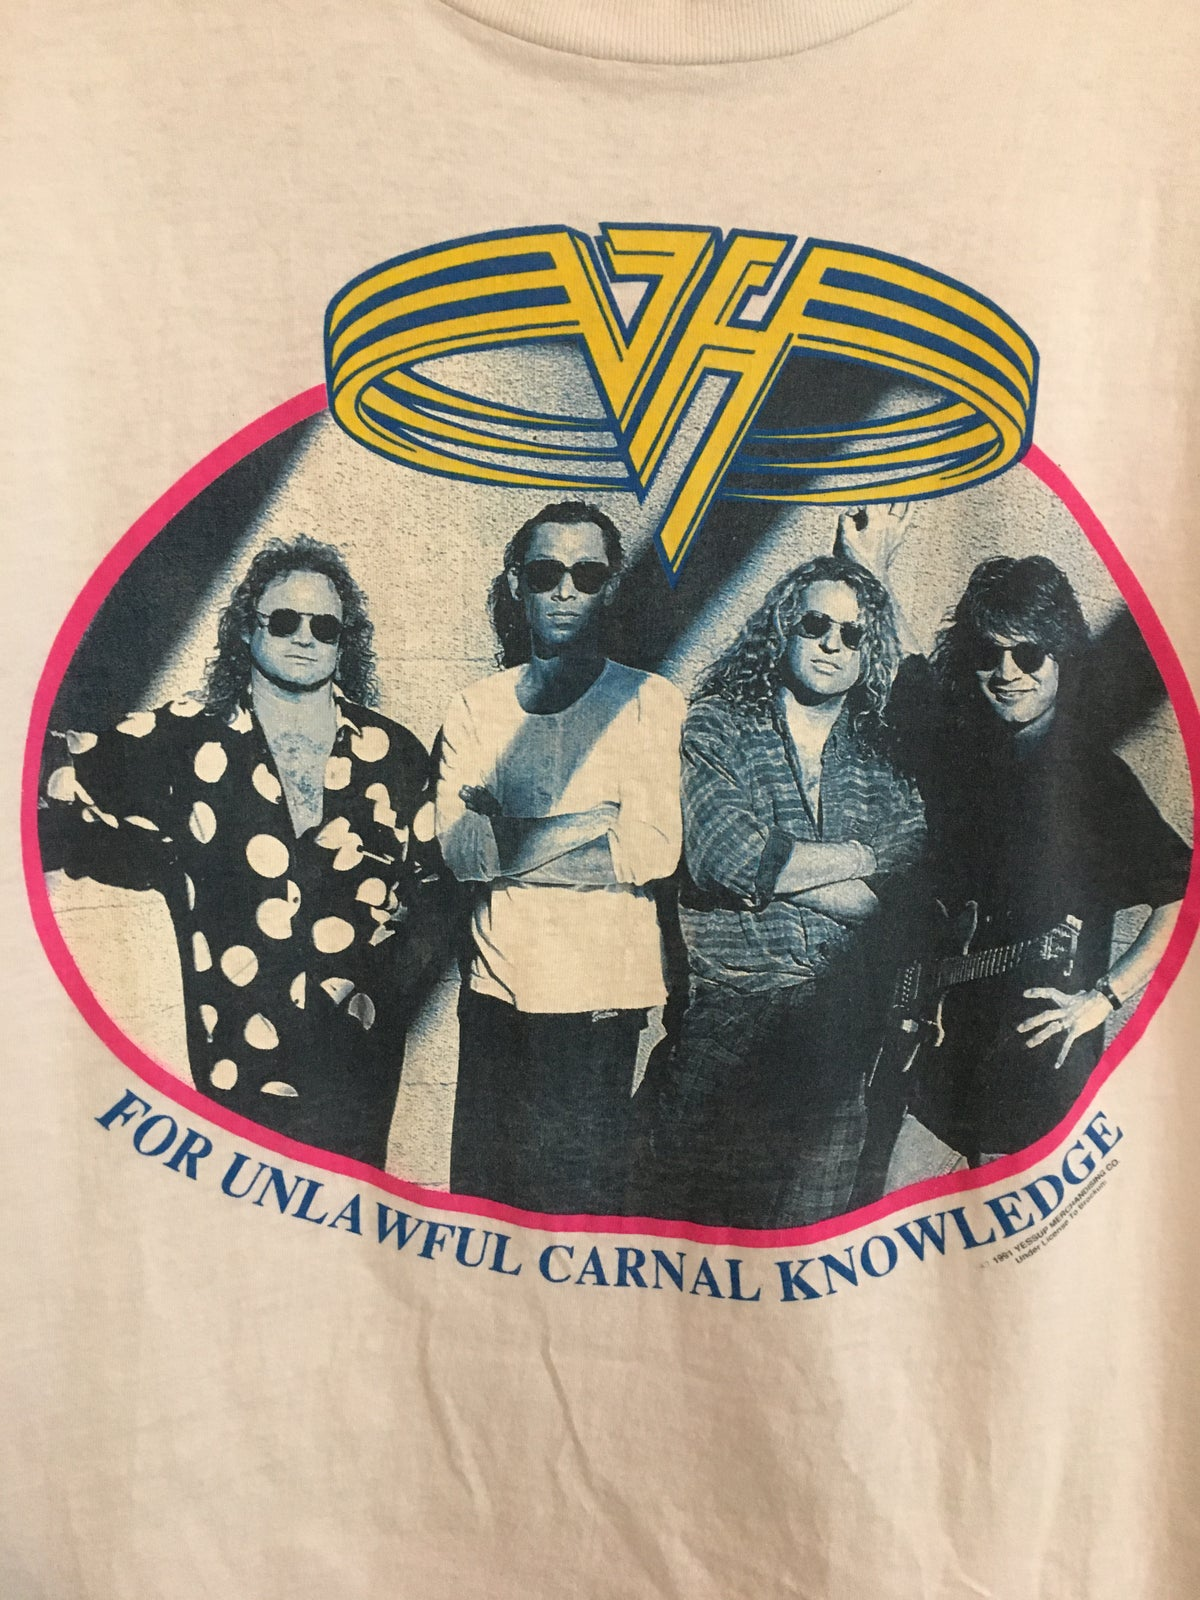 1991 Rare Van Halen  For Unlawful Carnal Knowledge Tee